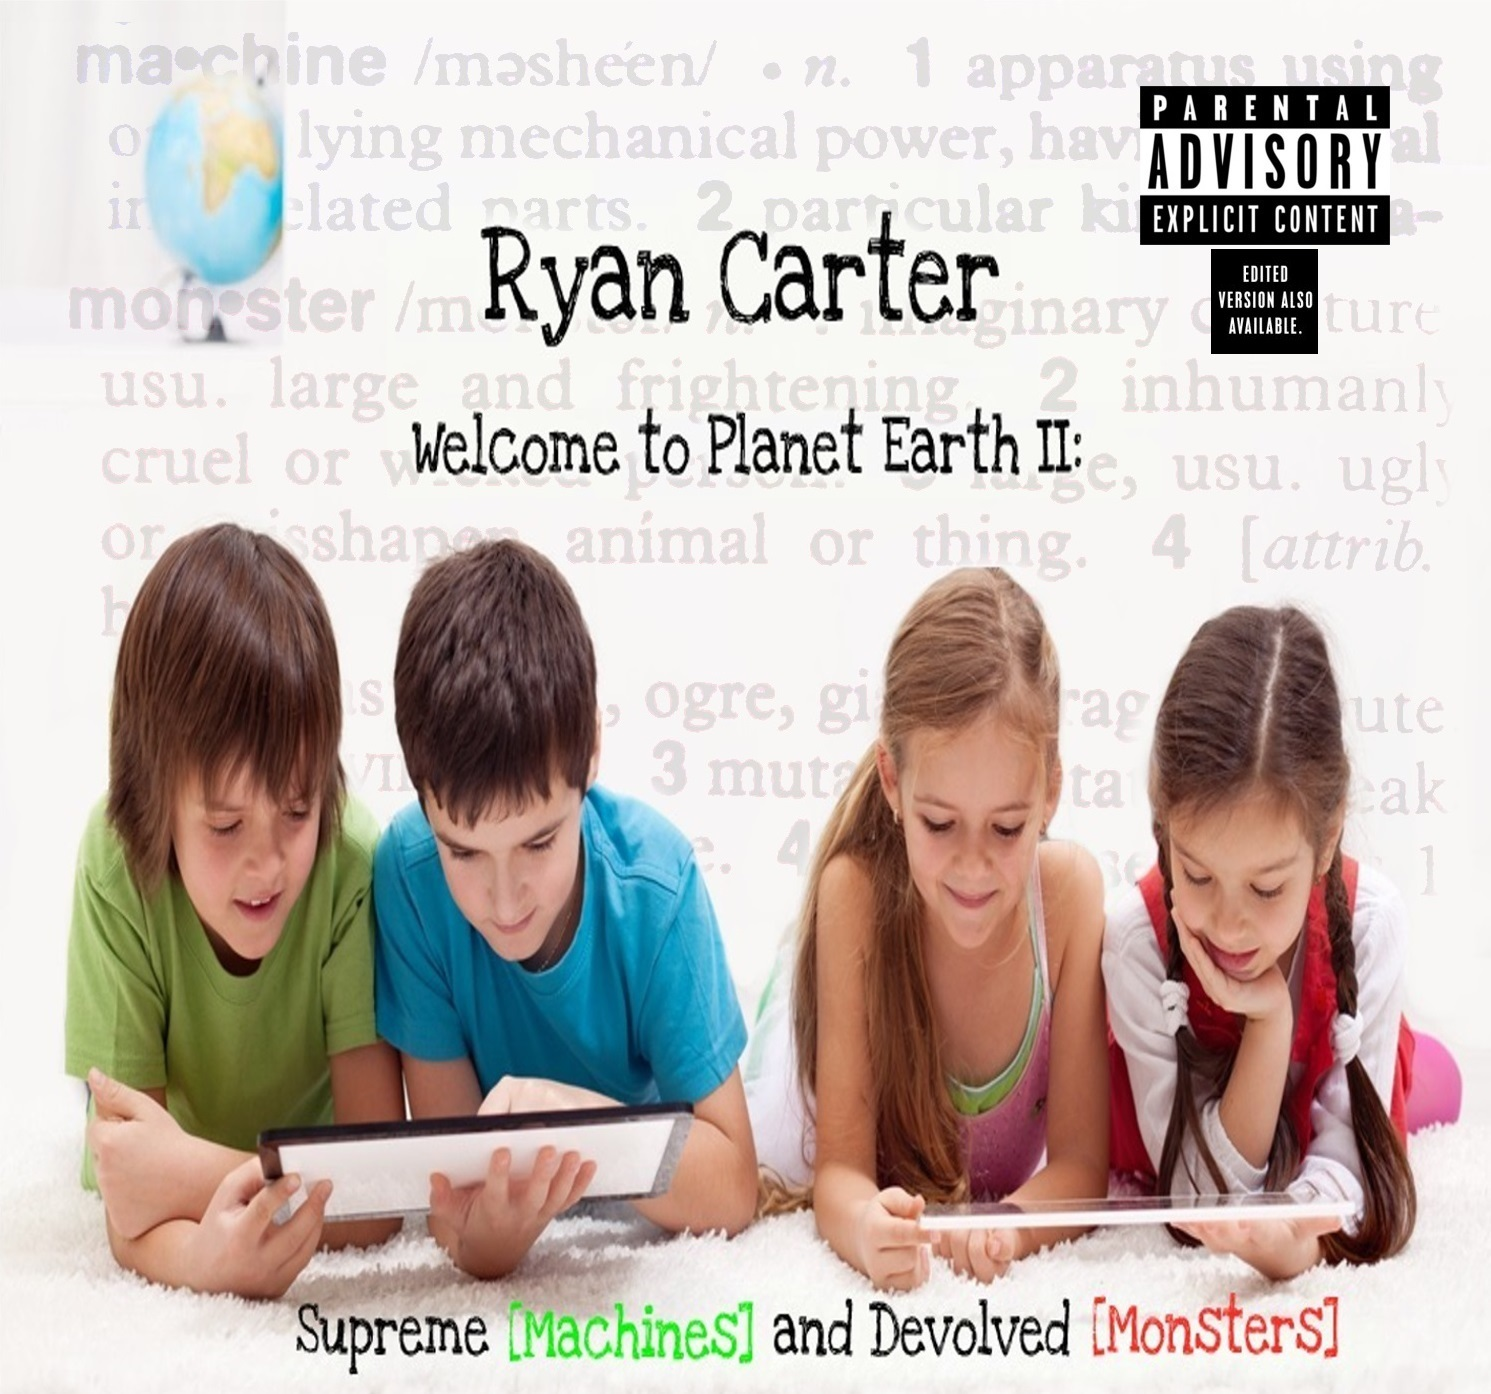 Welcome to Planet Earth 2 Supreme [Machines] and Devolved [Monsters]